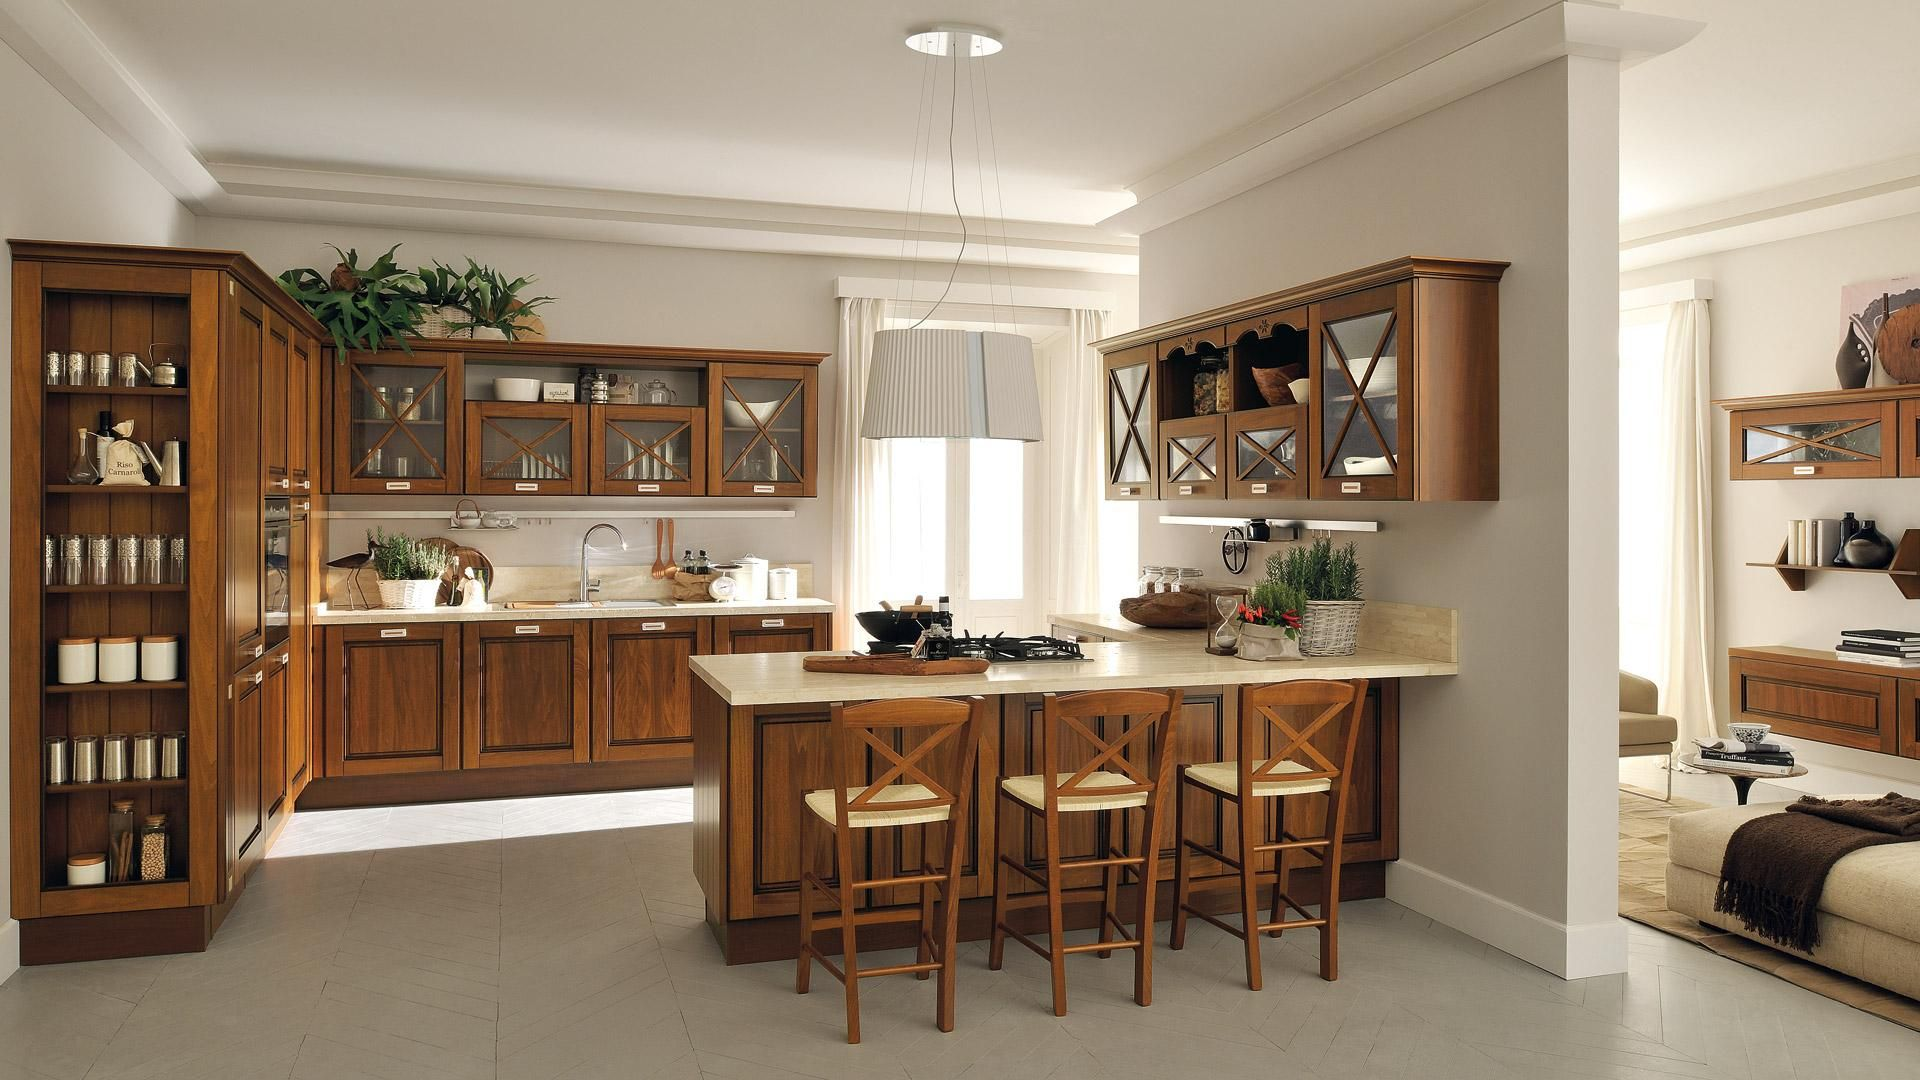 erica - traditional european kitchen cabinets a completely